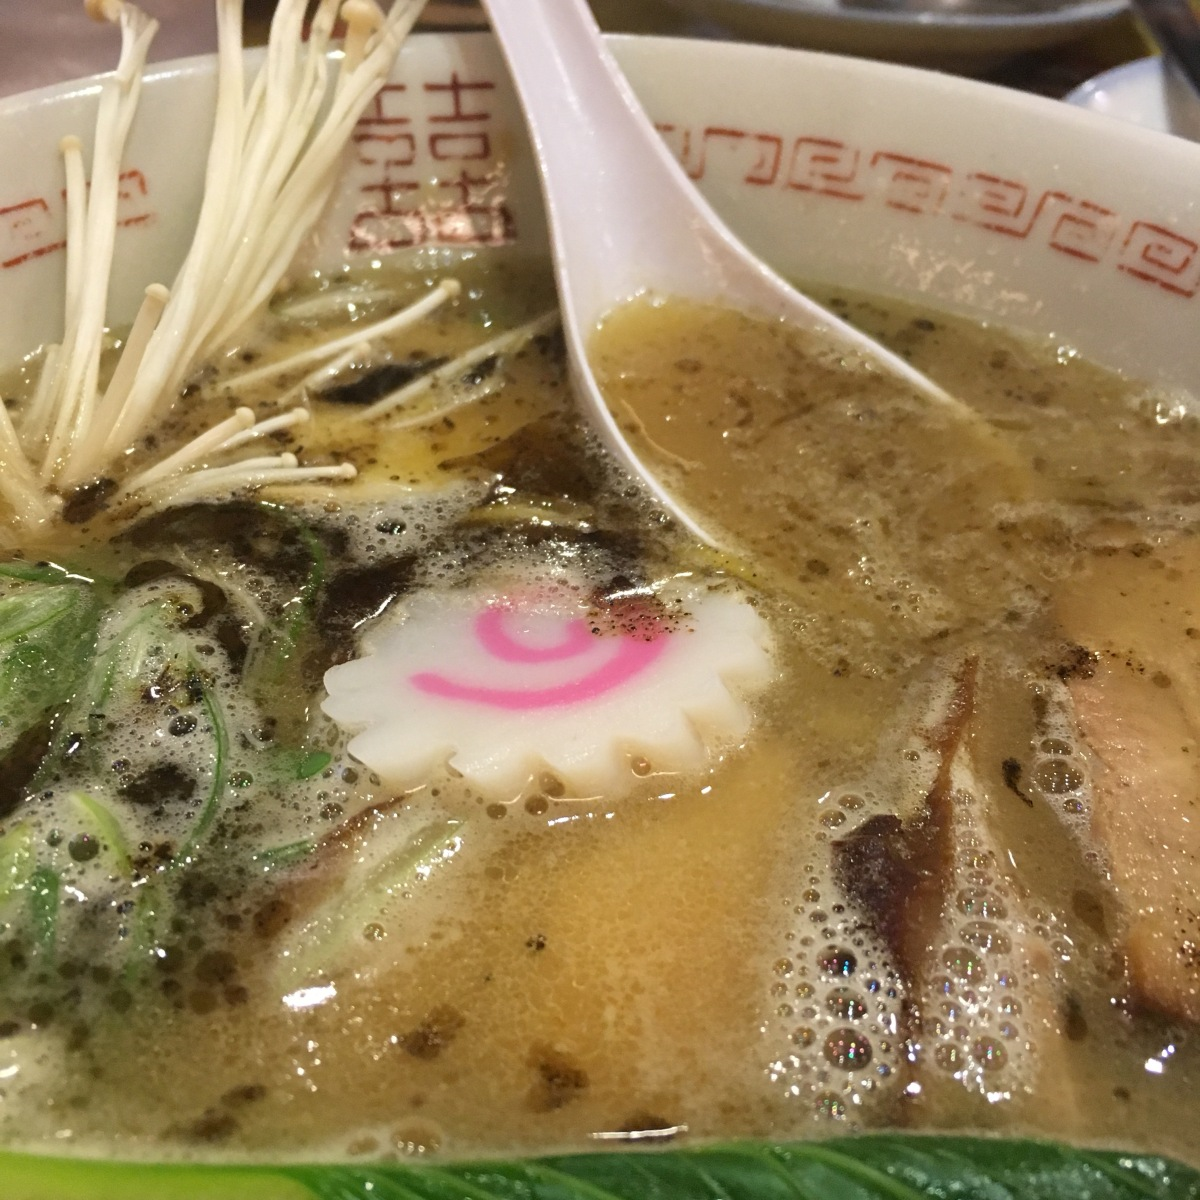 Ramen break at Rai Rai Ken